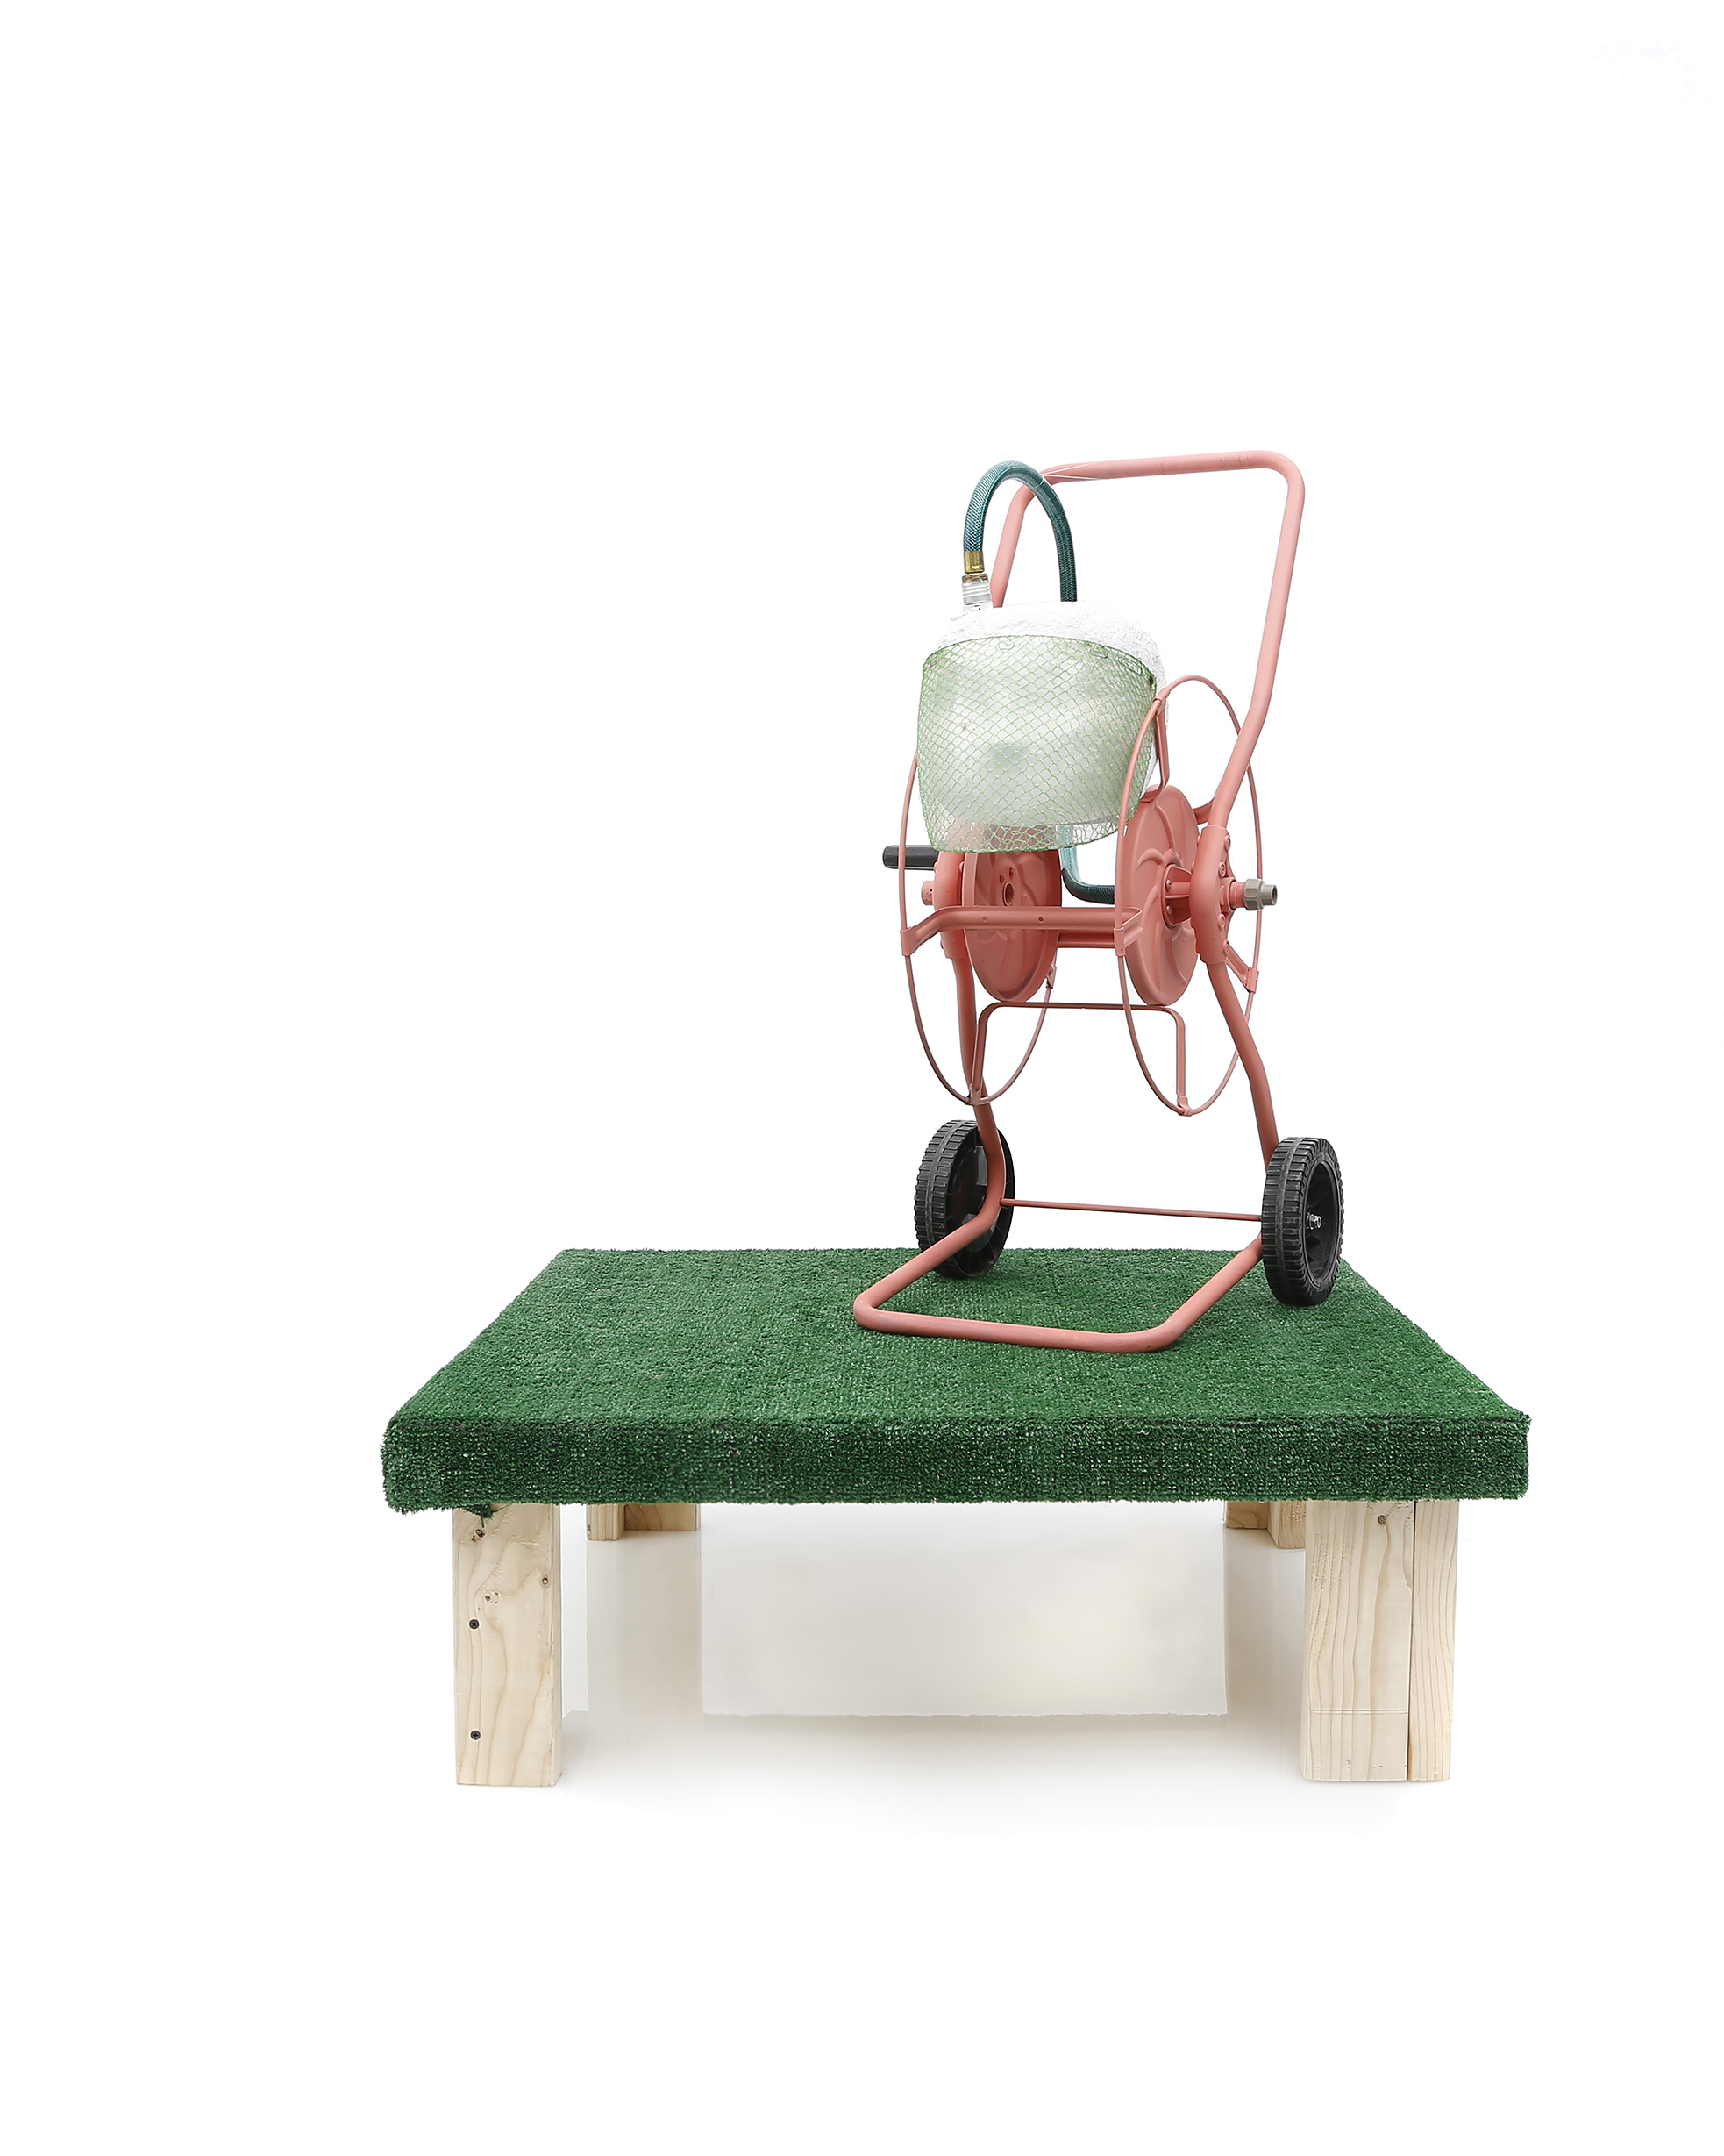 YES Machine, 2017, Hose reel, face shield, plastic mesh, foam, aqua resin, artificial grass, wood, paint